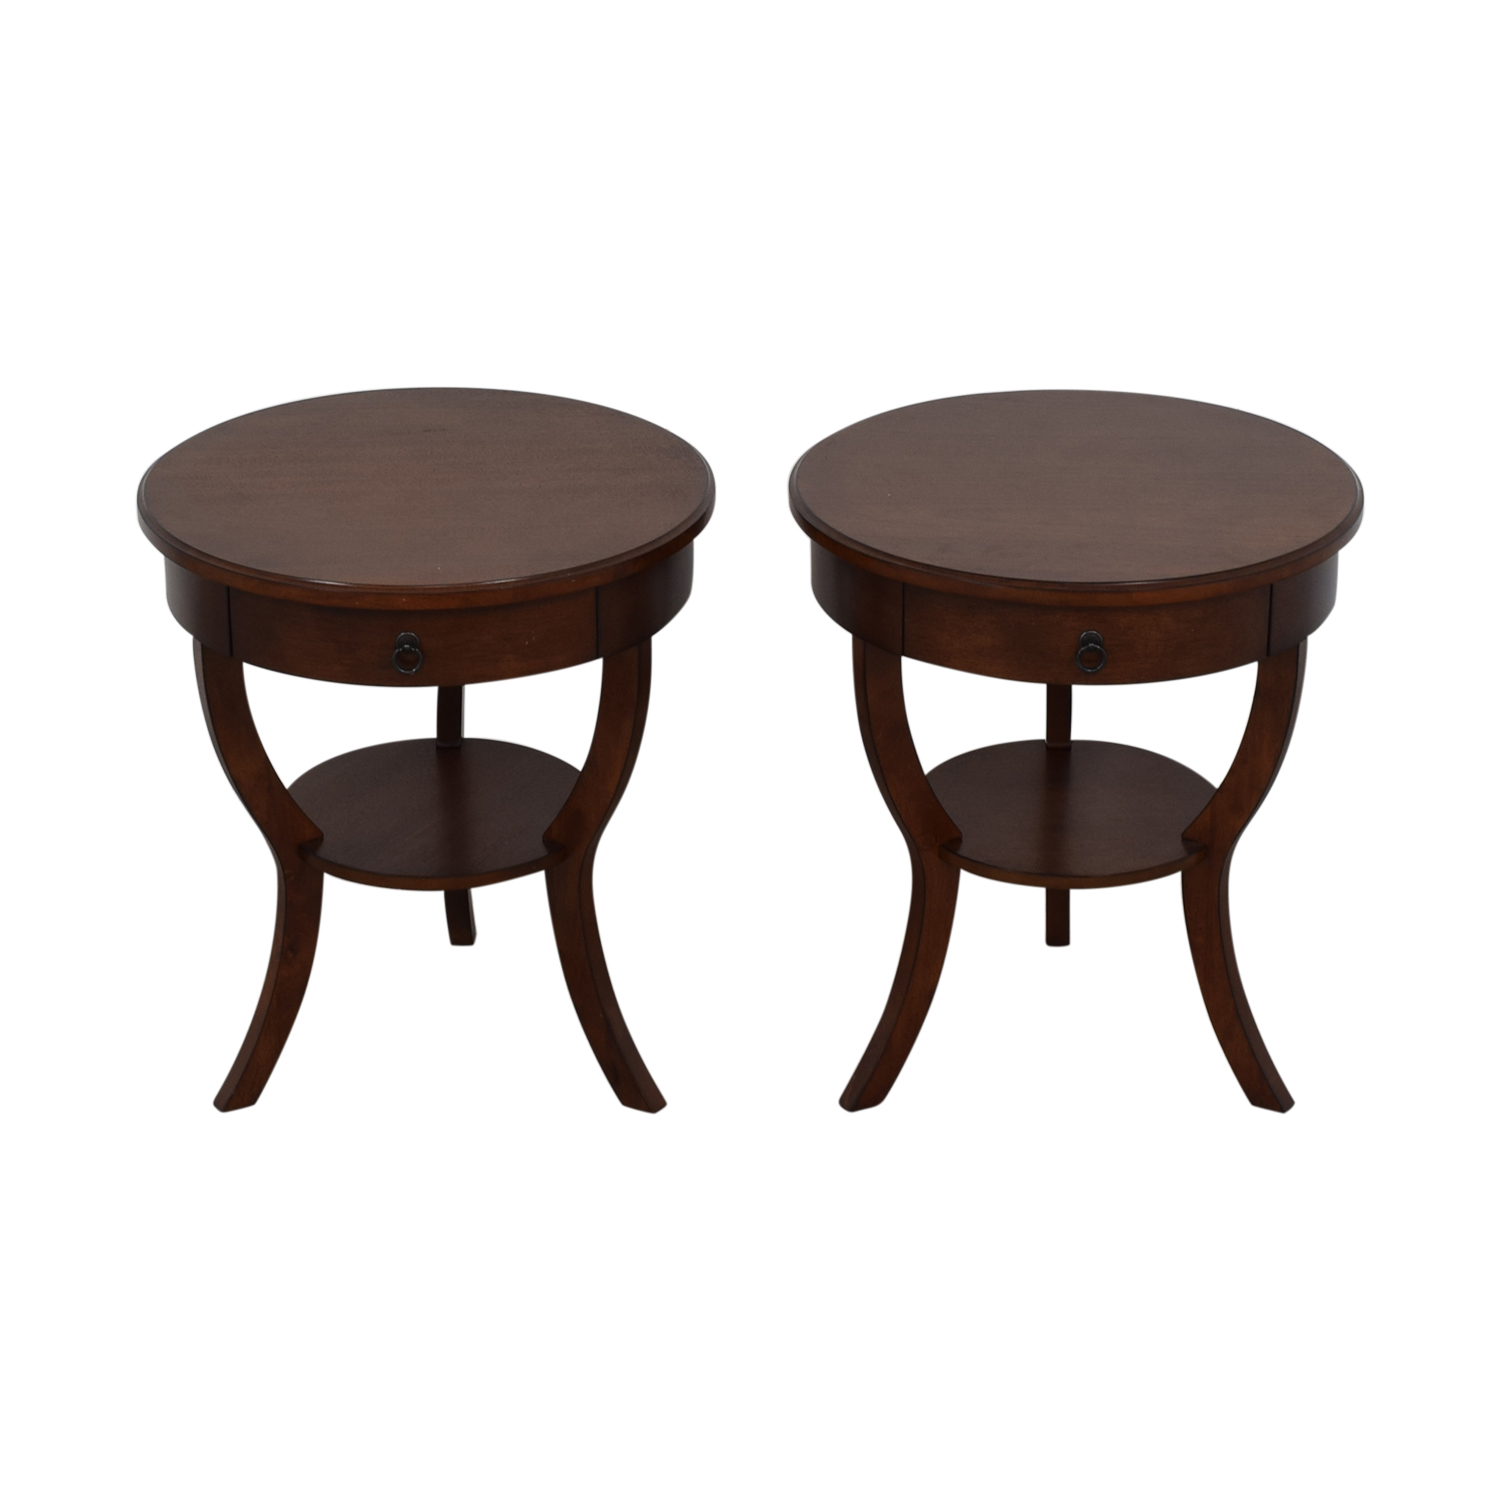 Pottery Barn Pottery Barn Carrie Round Single-Drawer Pedestal End Tables Tables